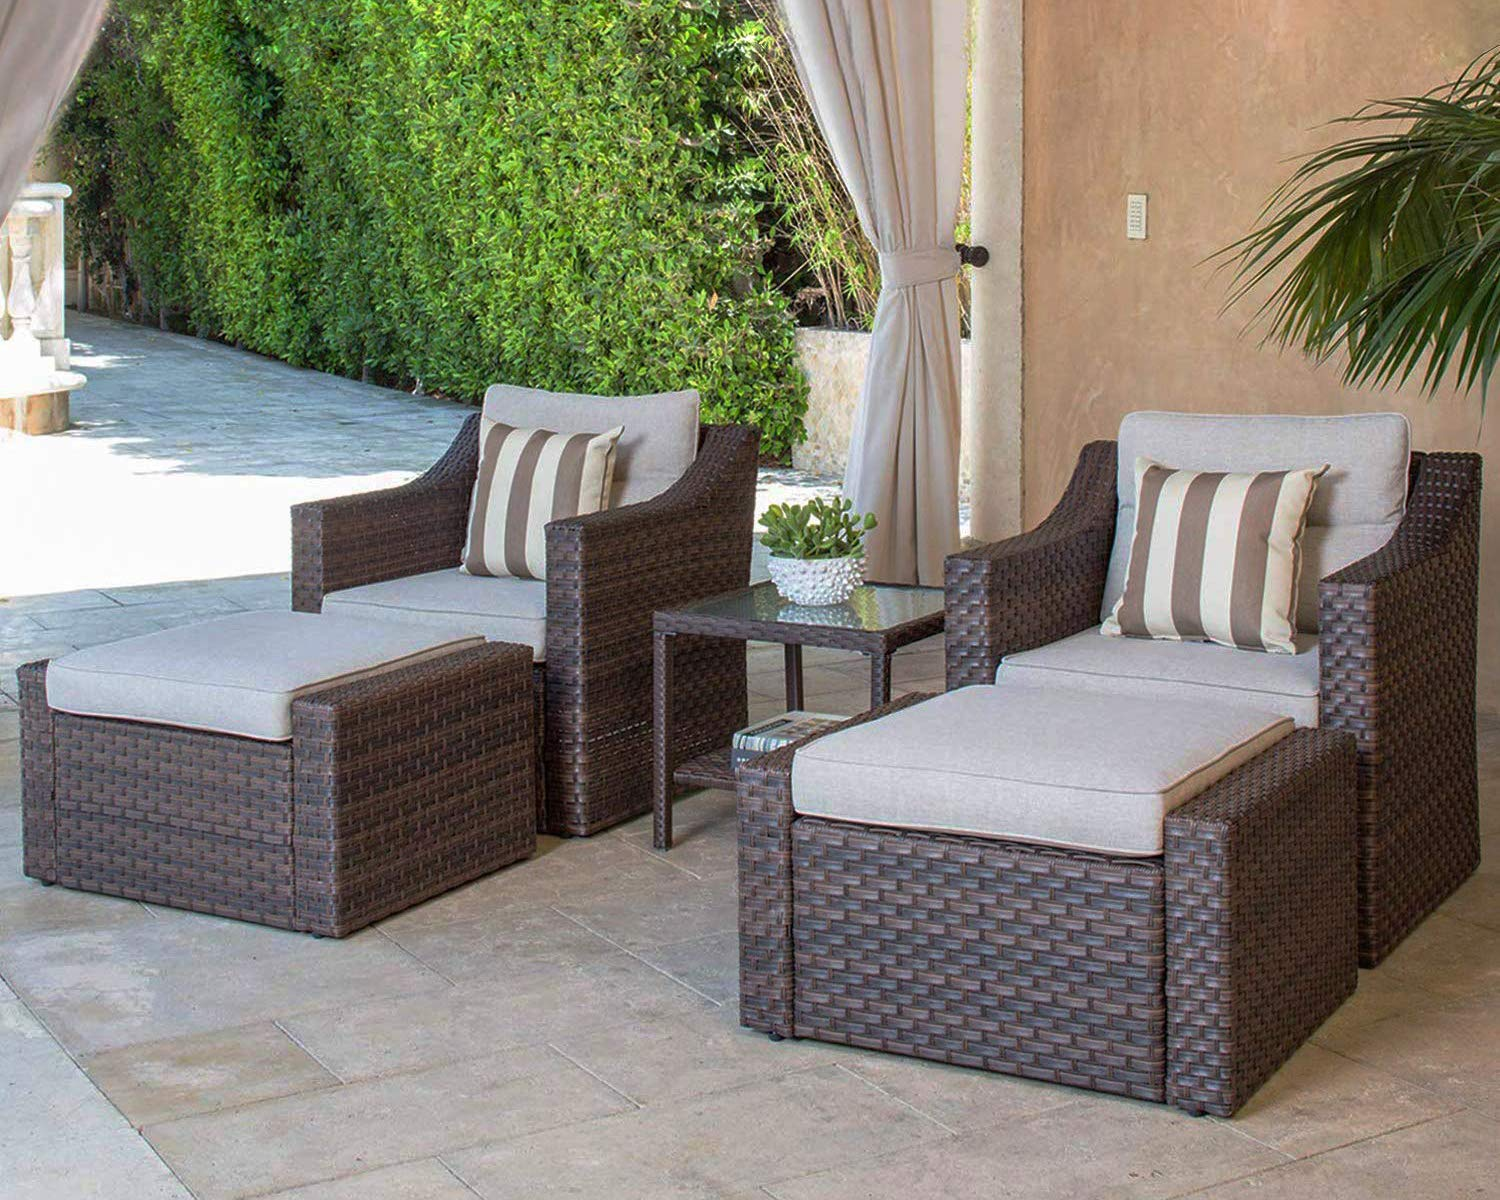 SOLAURA 5-Piece Sofa Outdoor Furniture Set, Wicker Lounge Chair & Ottoman with Neutral Beige Cushions & Glass Coffee Side Table - Brown by SOLAURA